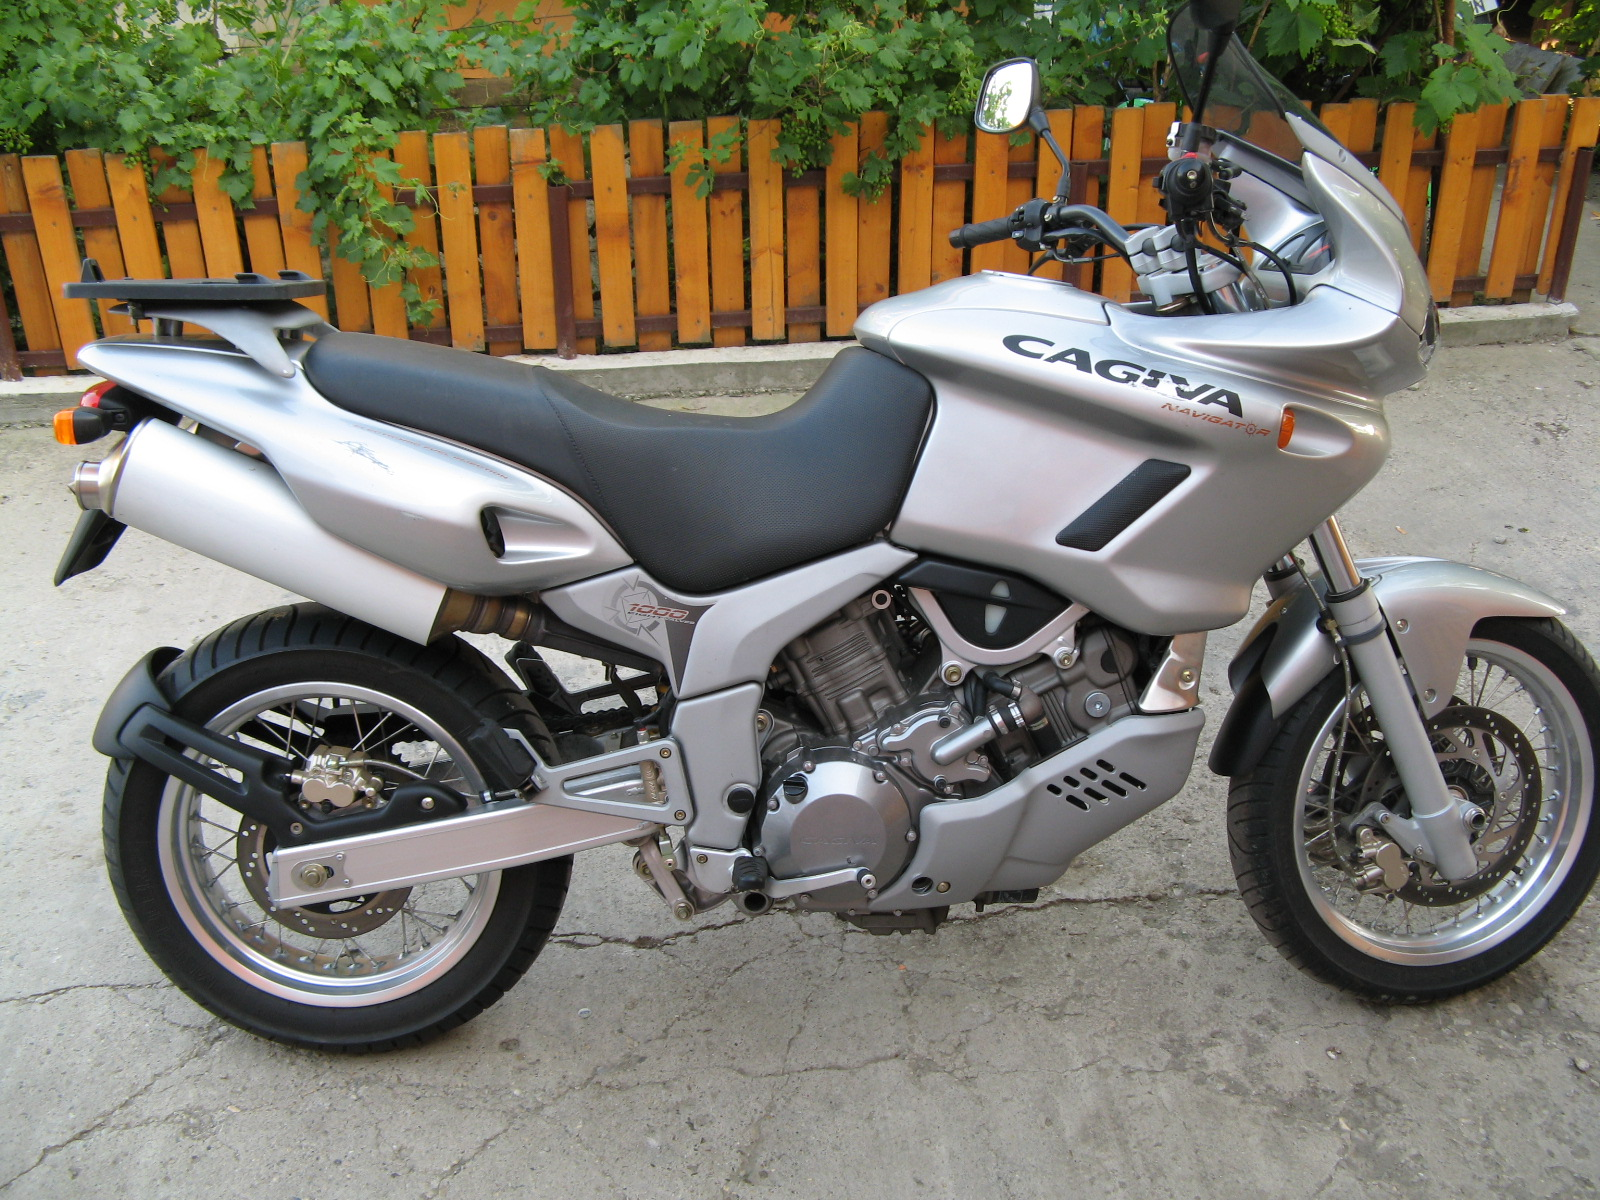 Cagiva Navigator 1000 2006 images #67707